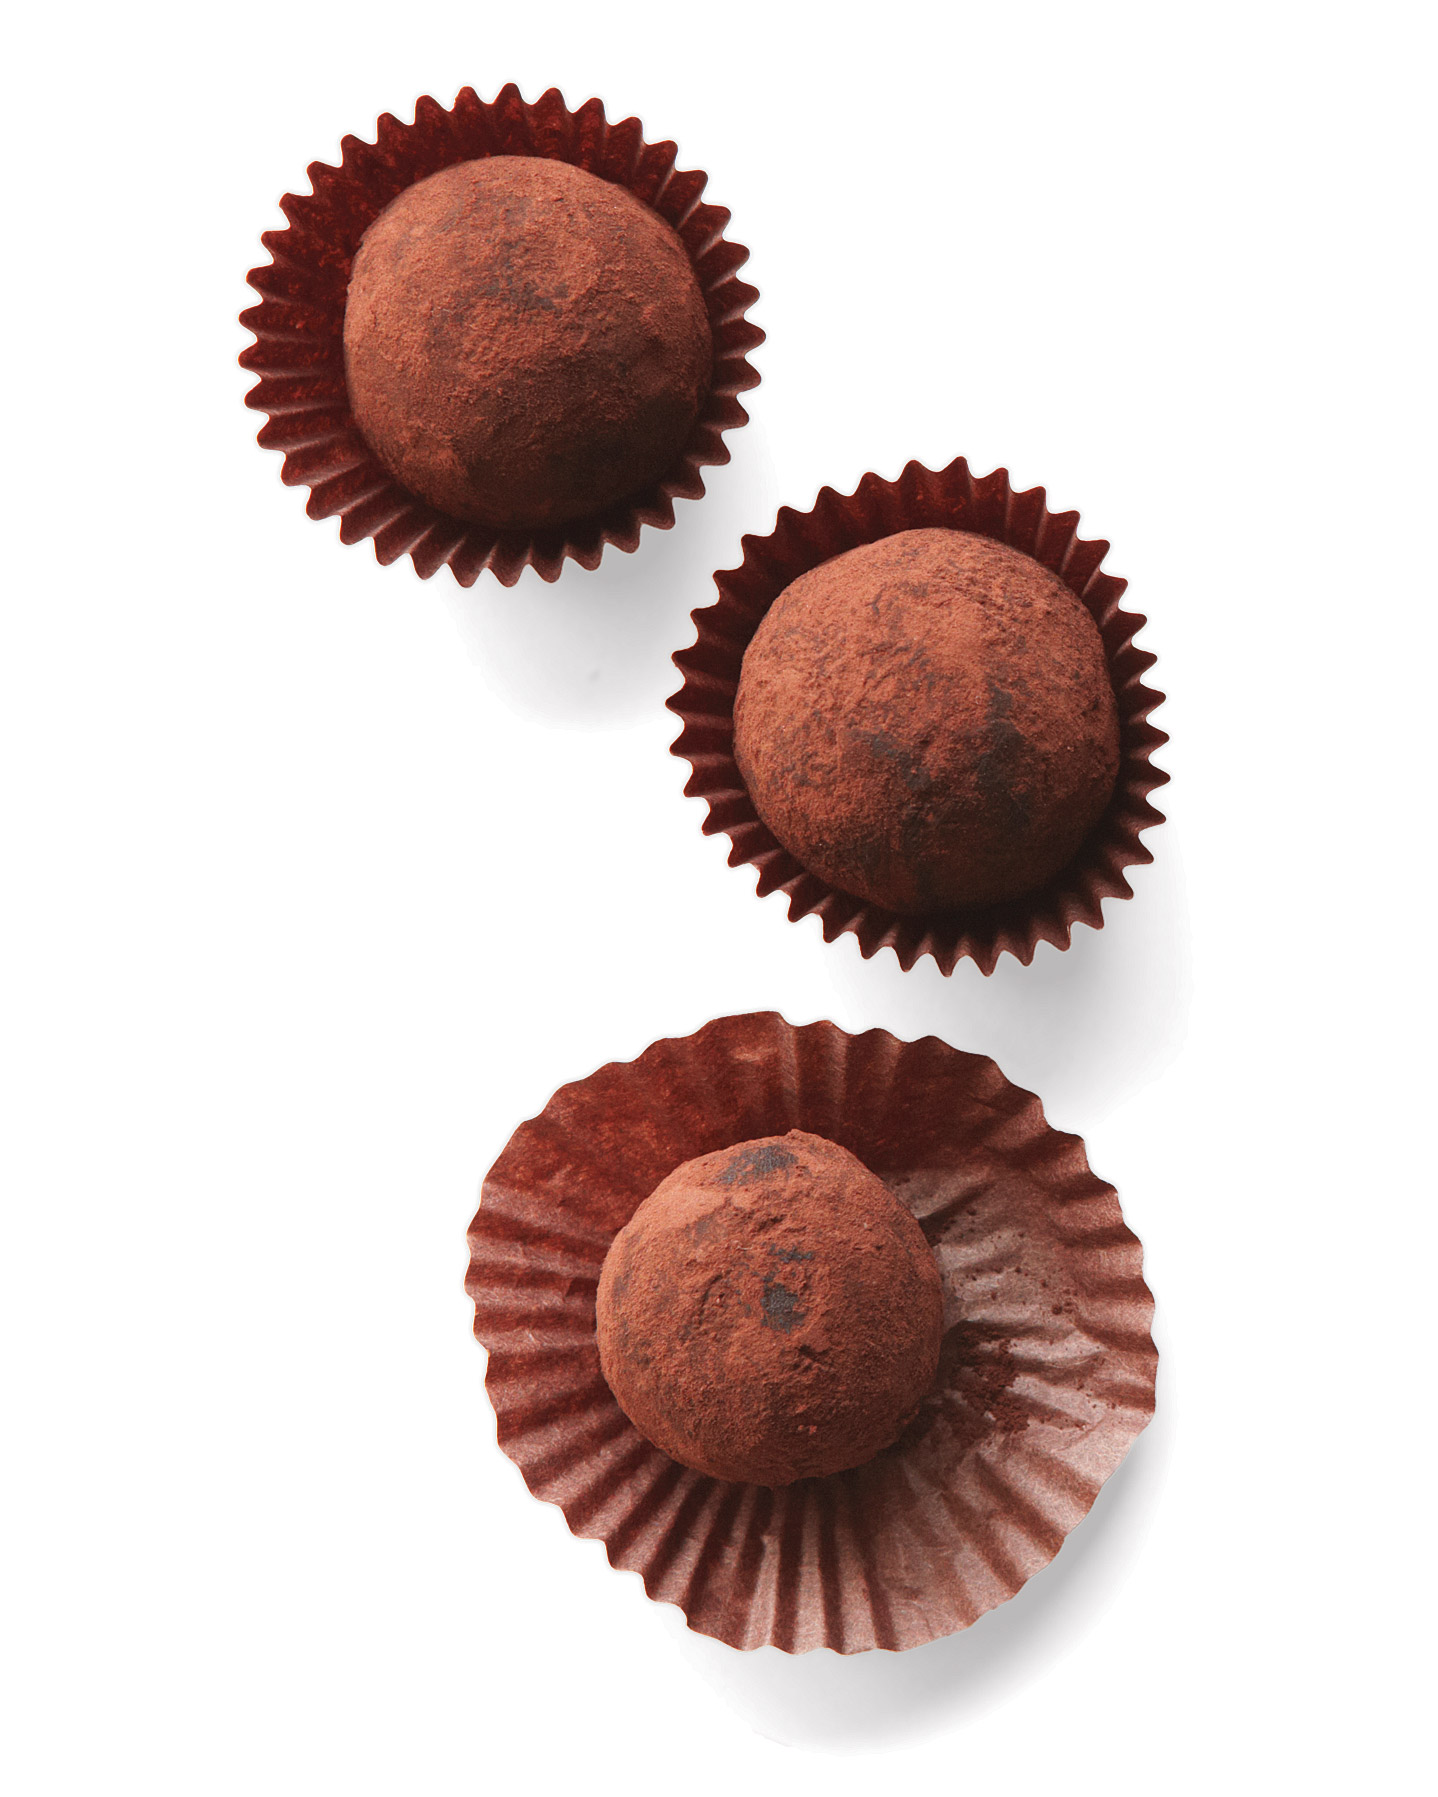 Chilled Ganache: Peanut Butter Truffles